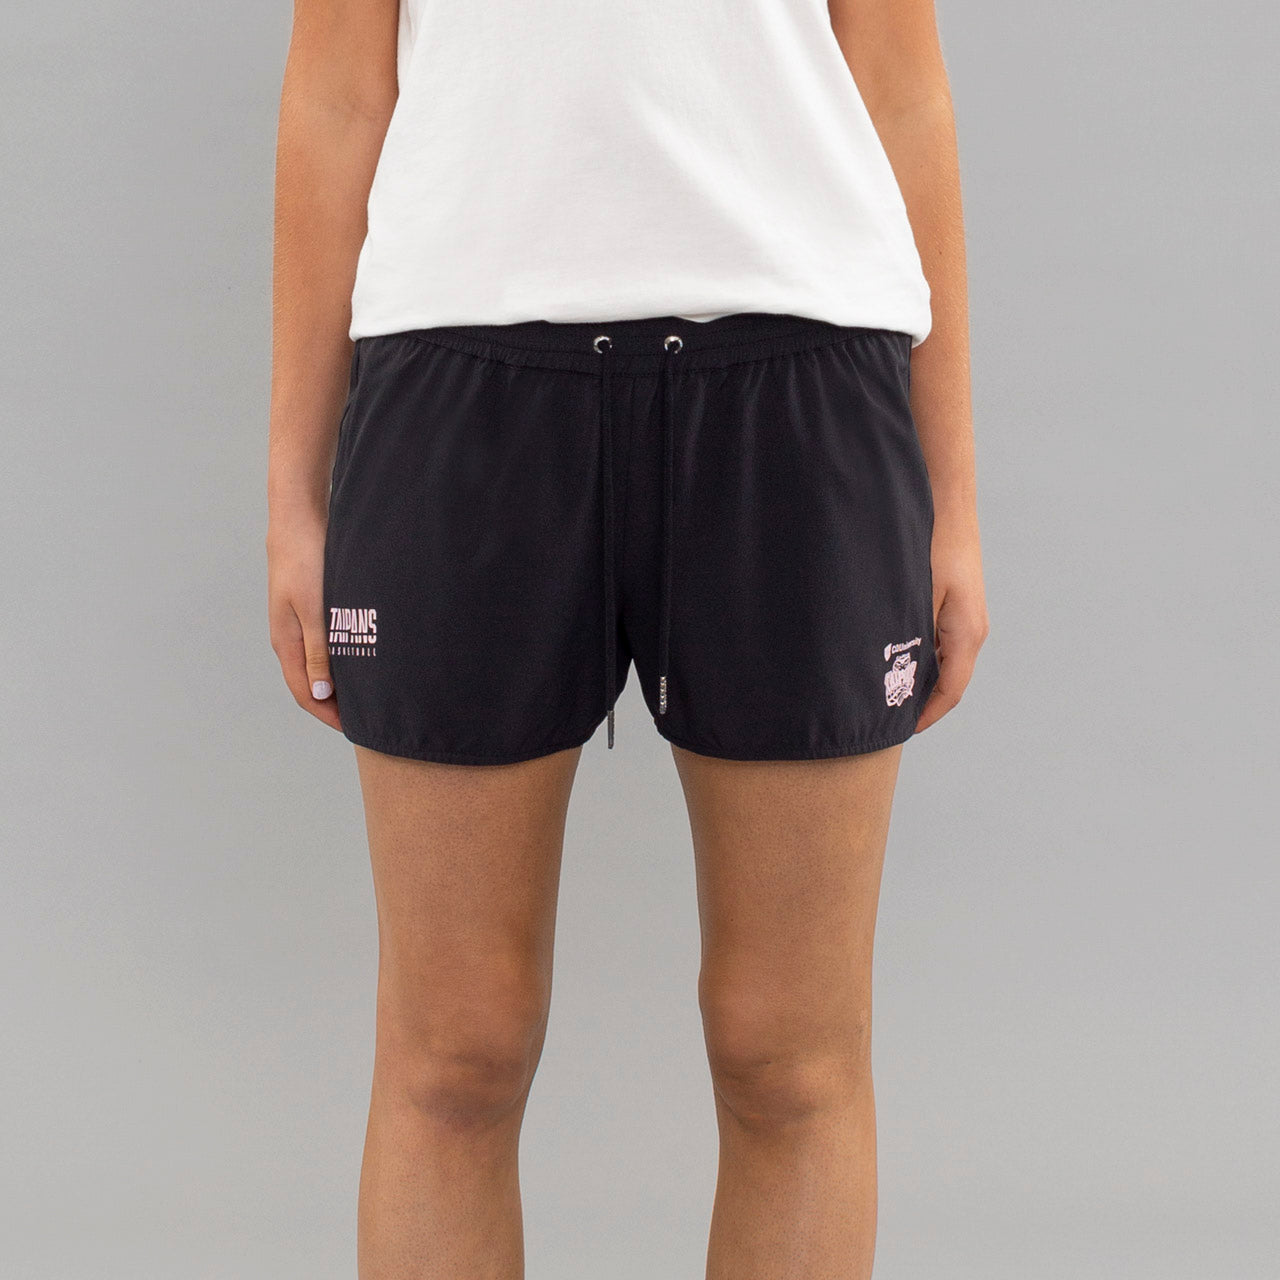 Cairns Taipans Womens Running Shorts